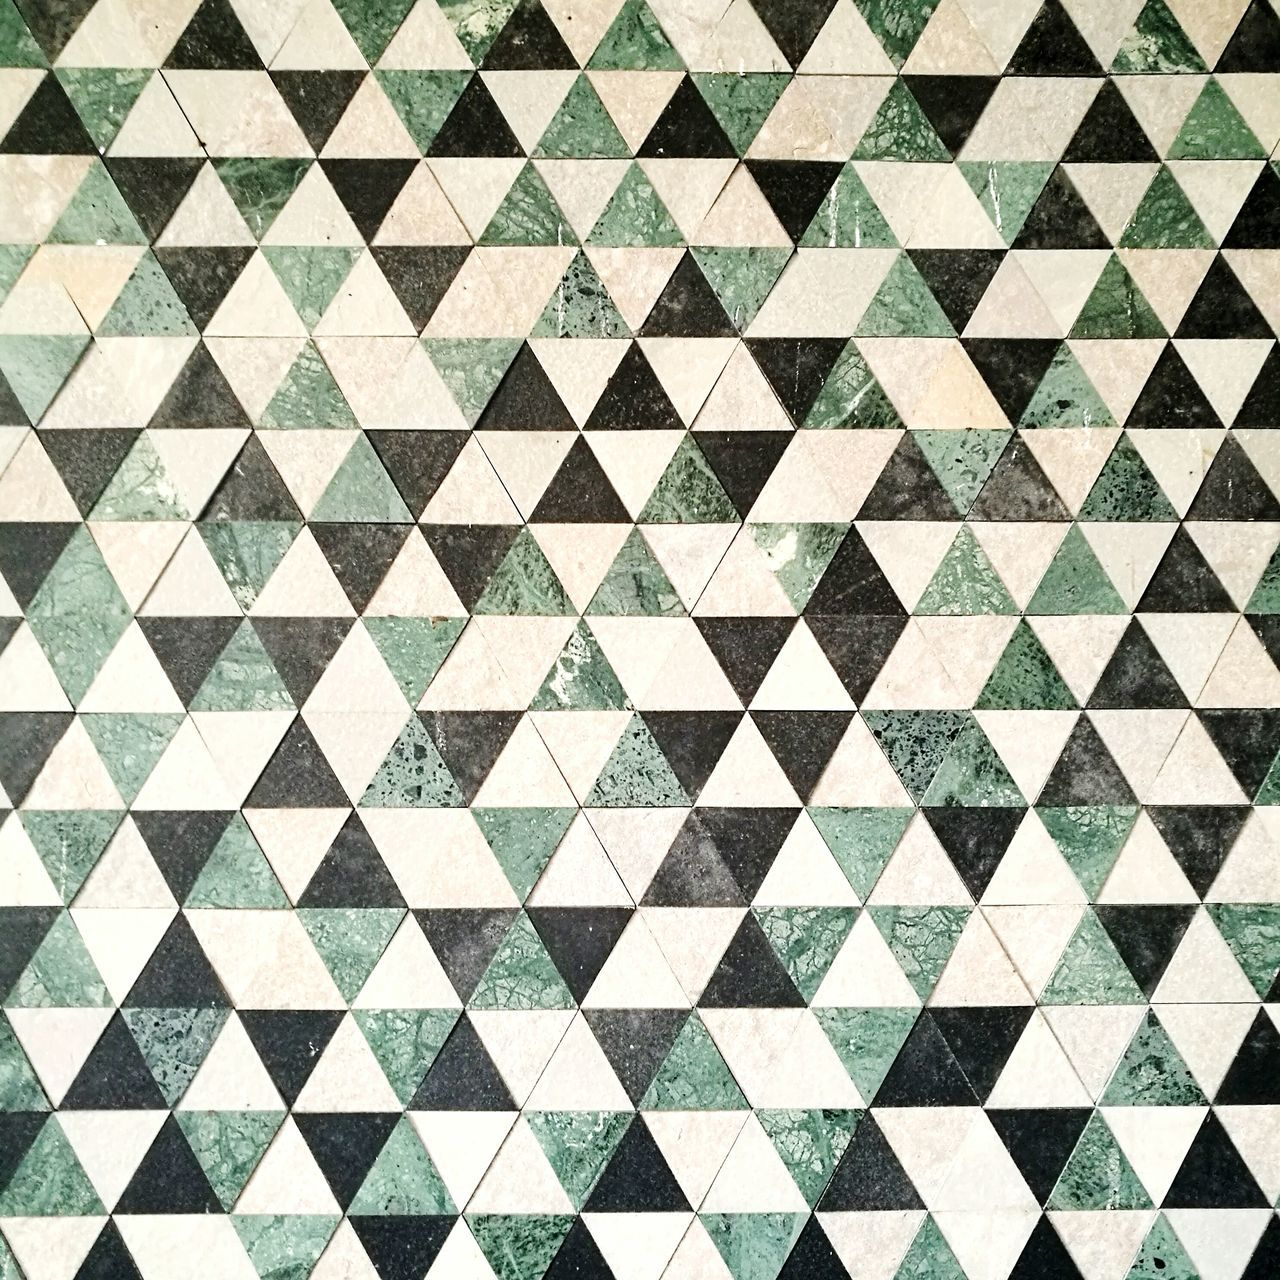 Pattern Backgrounds Tile Mosaic Seamless Pattern Diamond Shaped Full Frame Indoors  No People Chess Board